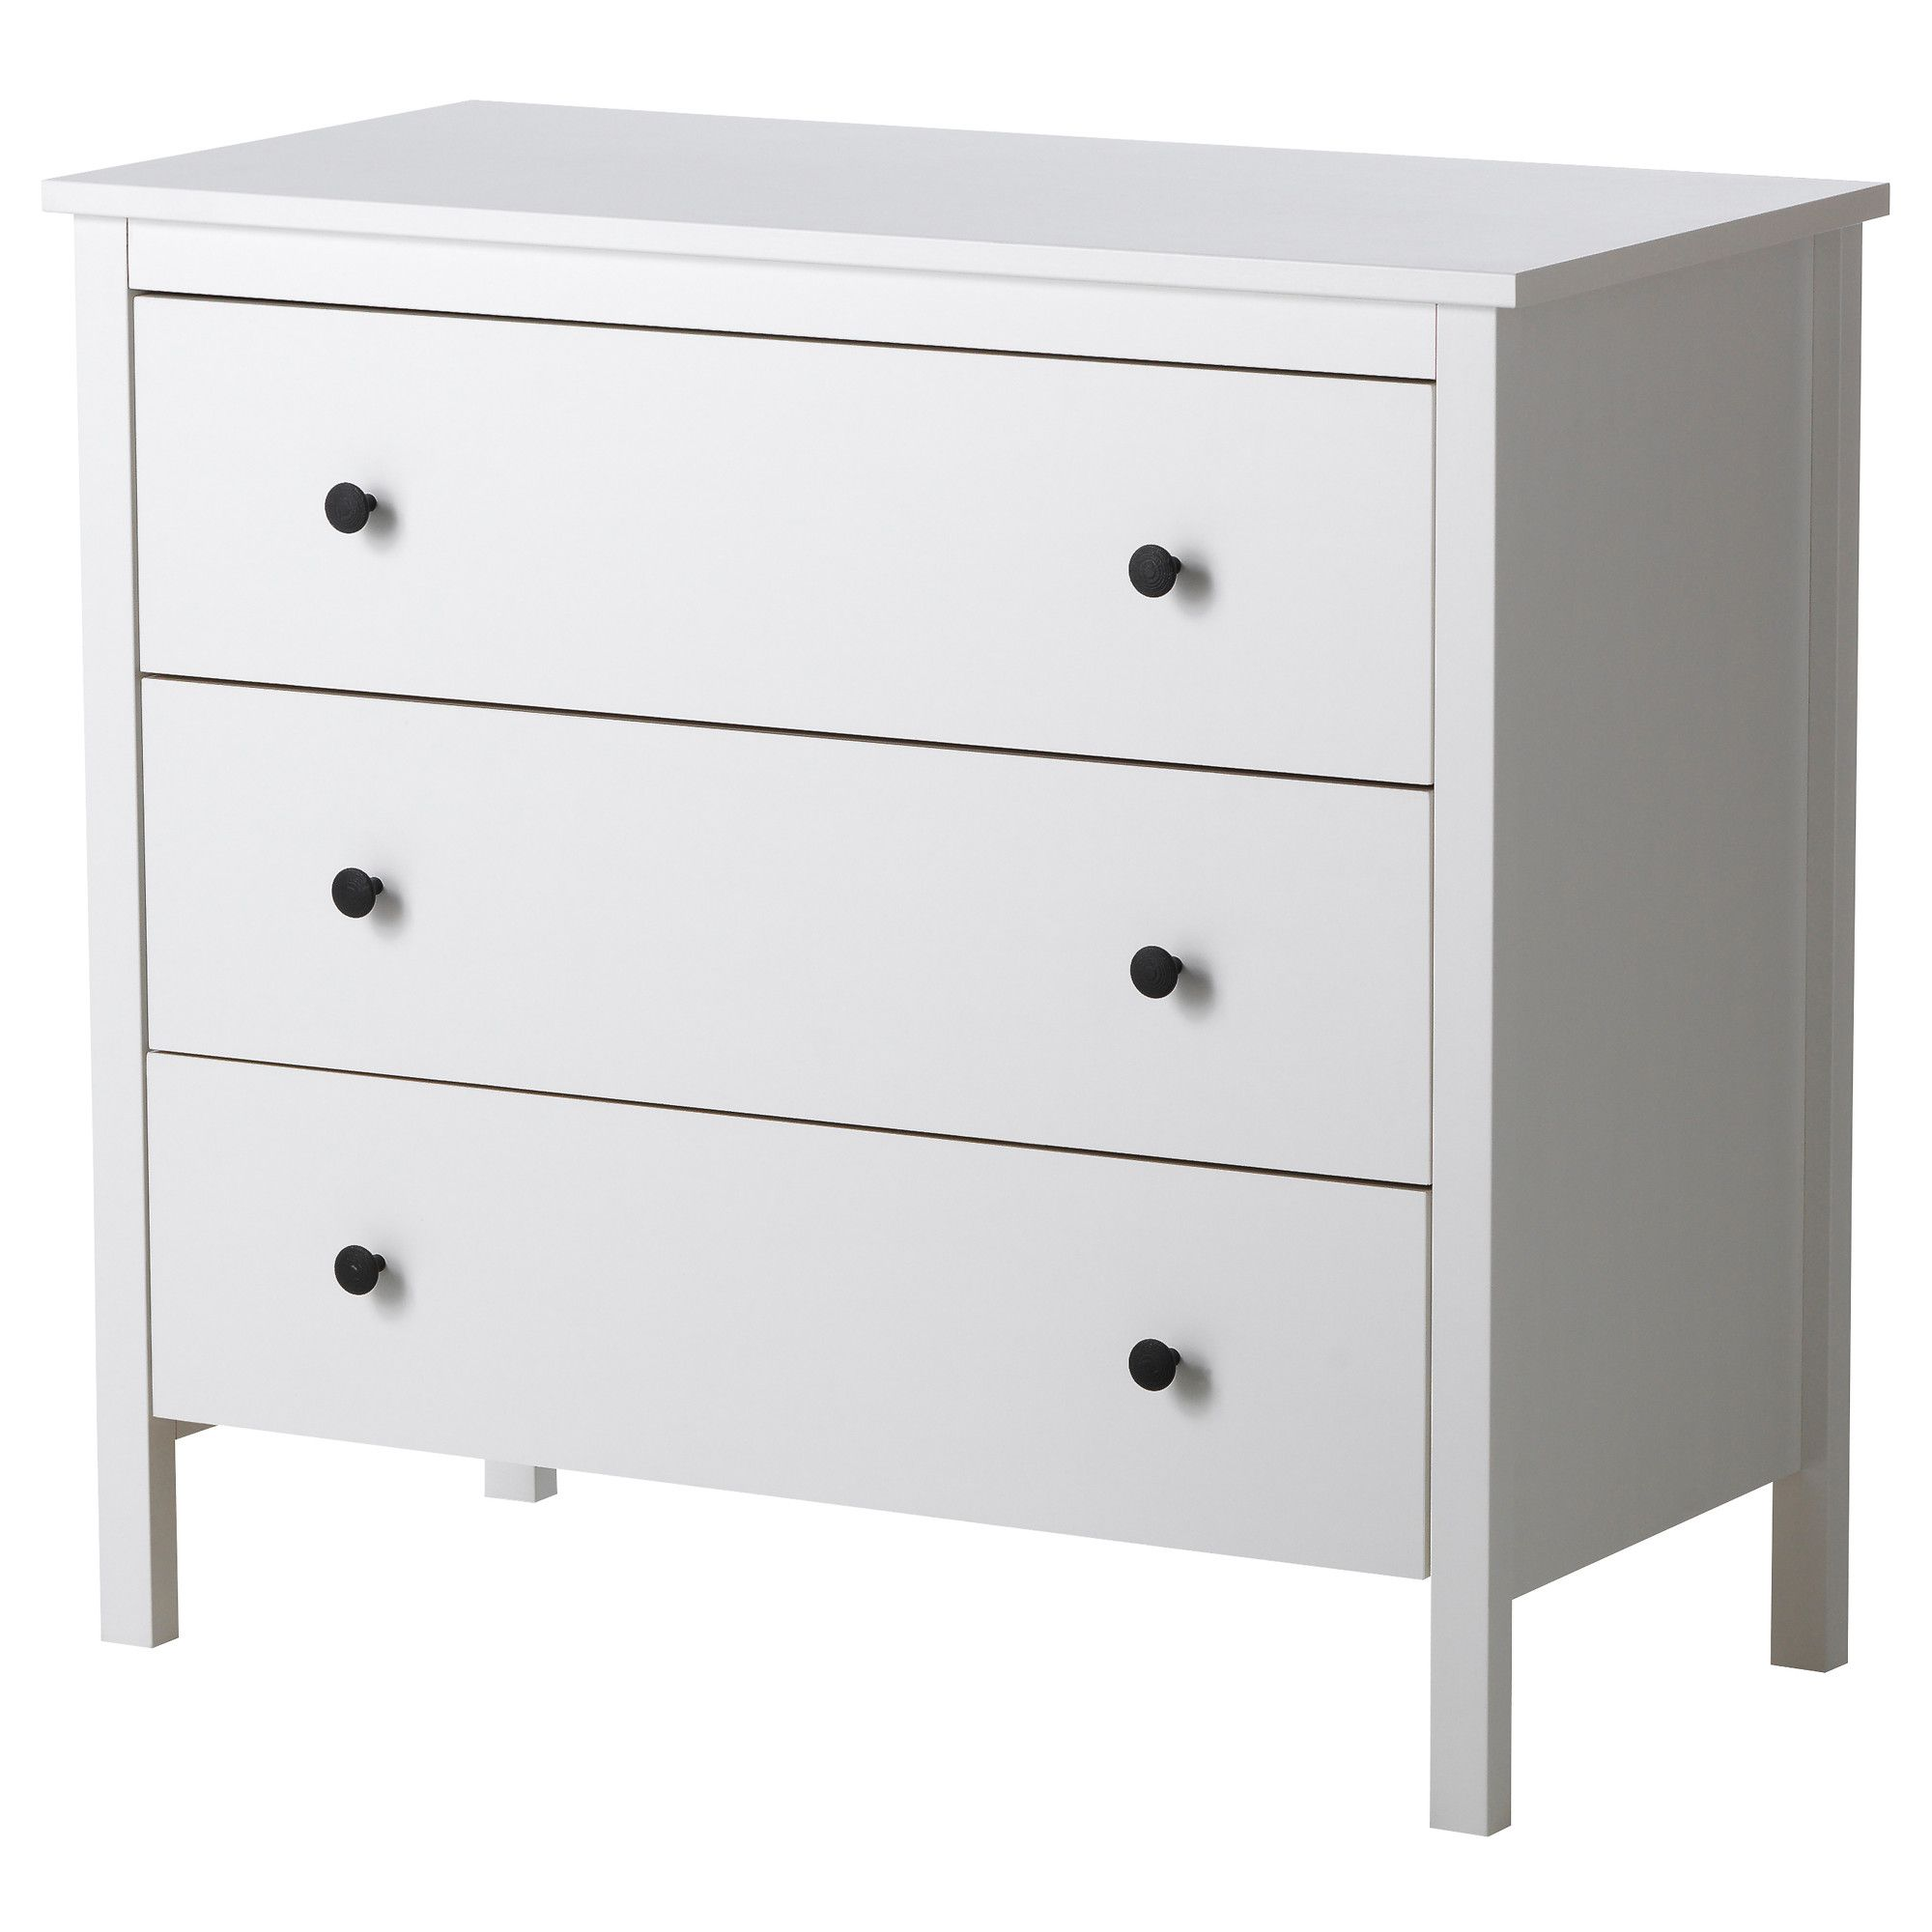 Ikea bedroom furniture chest of drawers - Koppang 3 Drawer Chest Ikea